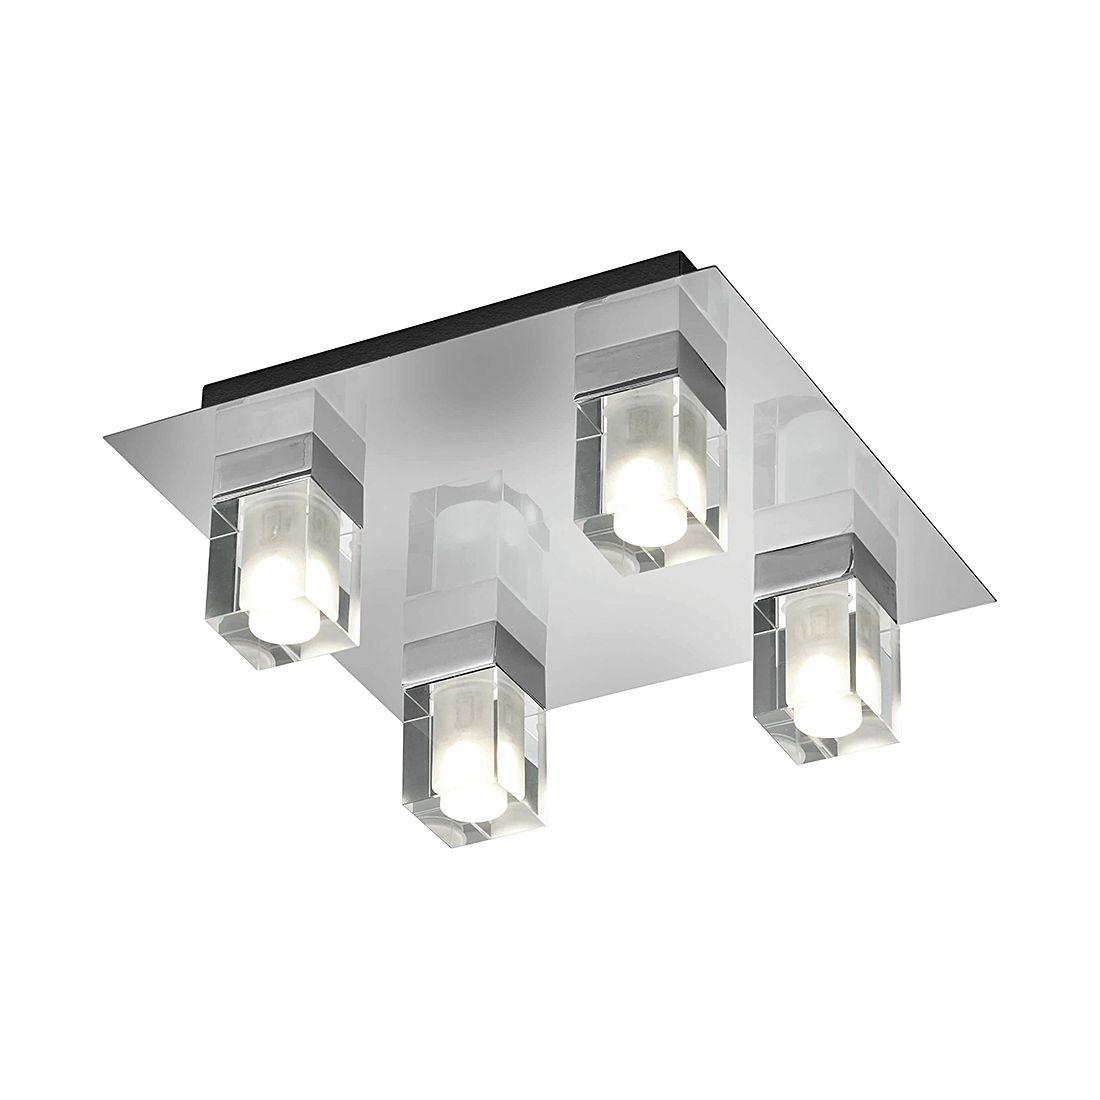 EEK A+, LED-Deckenleuchte - Metall - Chrom - 4-flammig, Trio